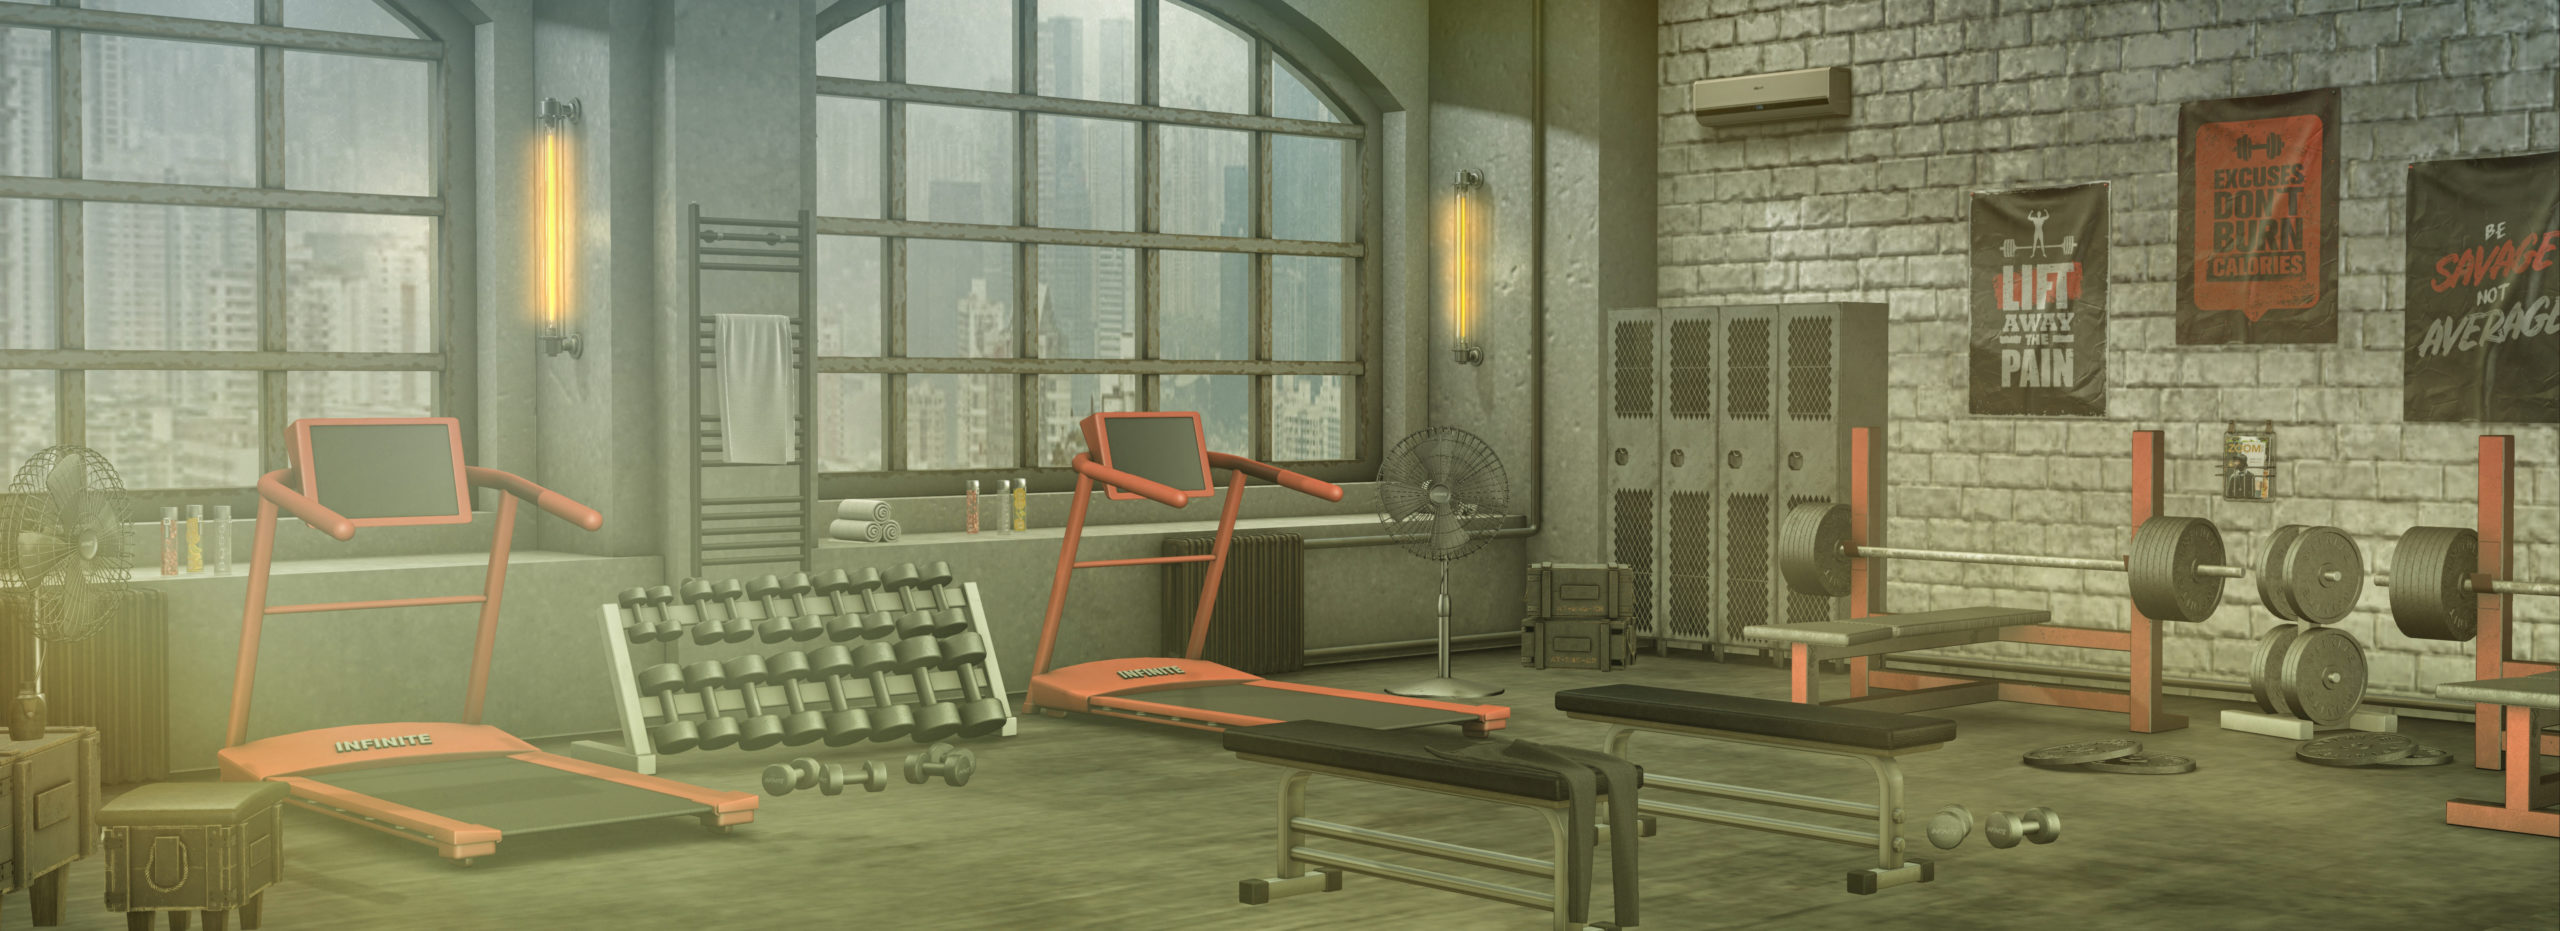 Infinite Furniture - Buck's Gym